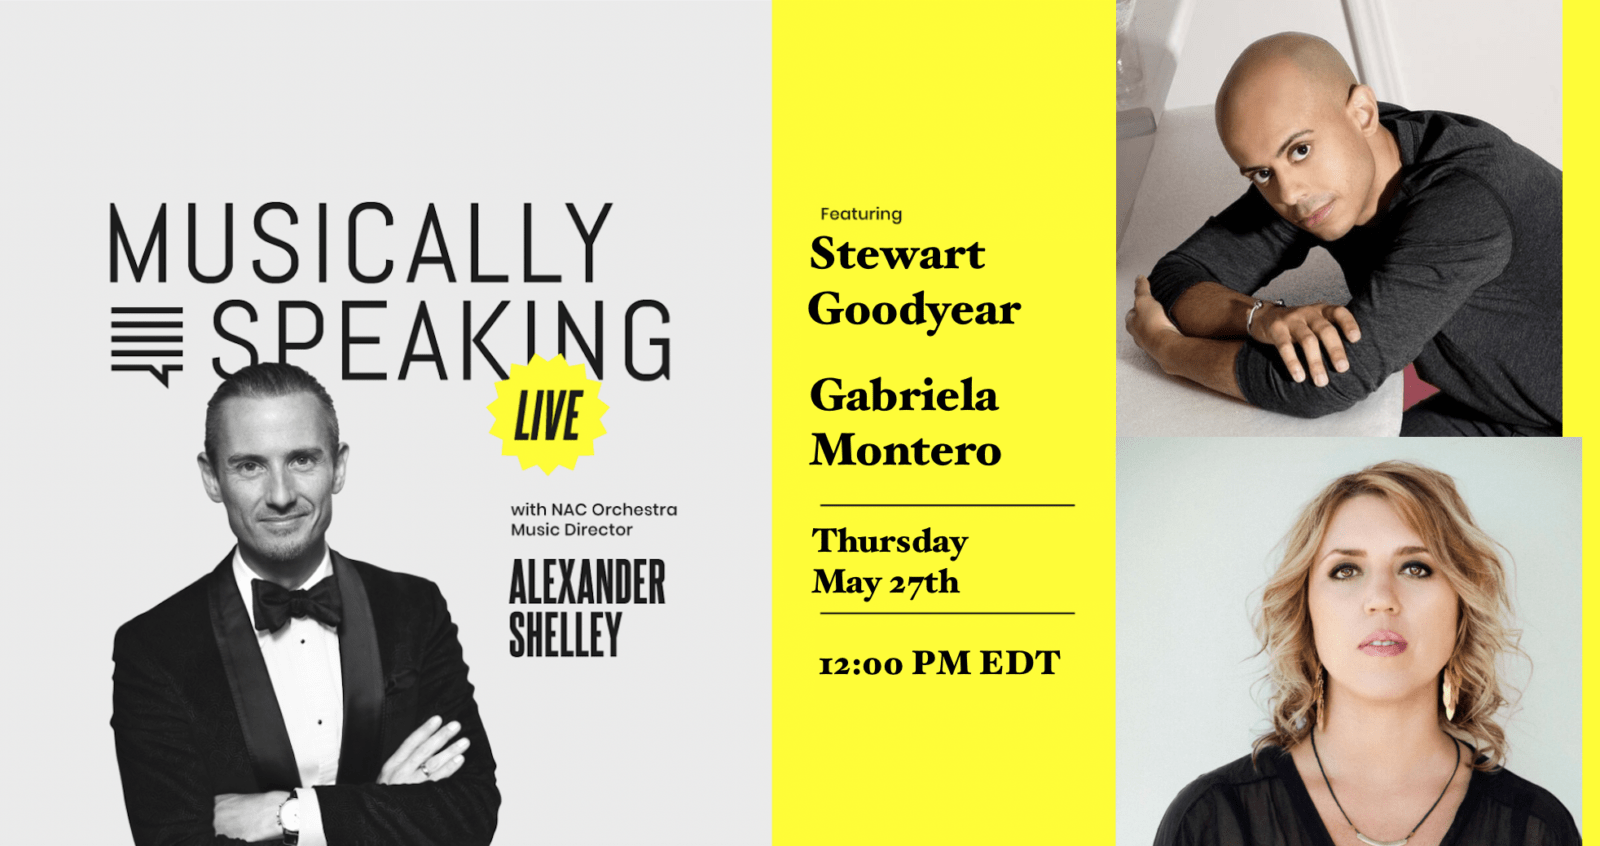 Musically Speaking: Join Alexander Shelley as he chats with Gabriela Montero and Stewart Goodyear about how a composer-performer uses an adaptive mindset in their work.